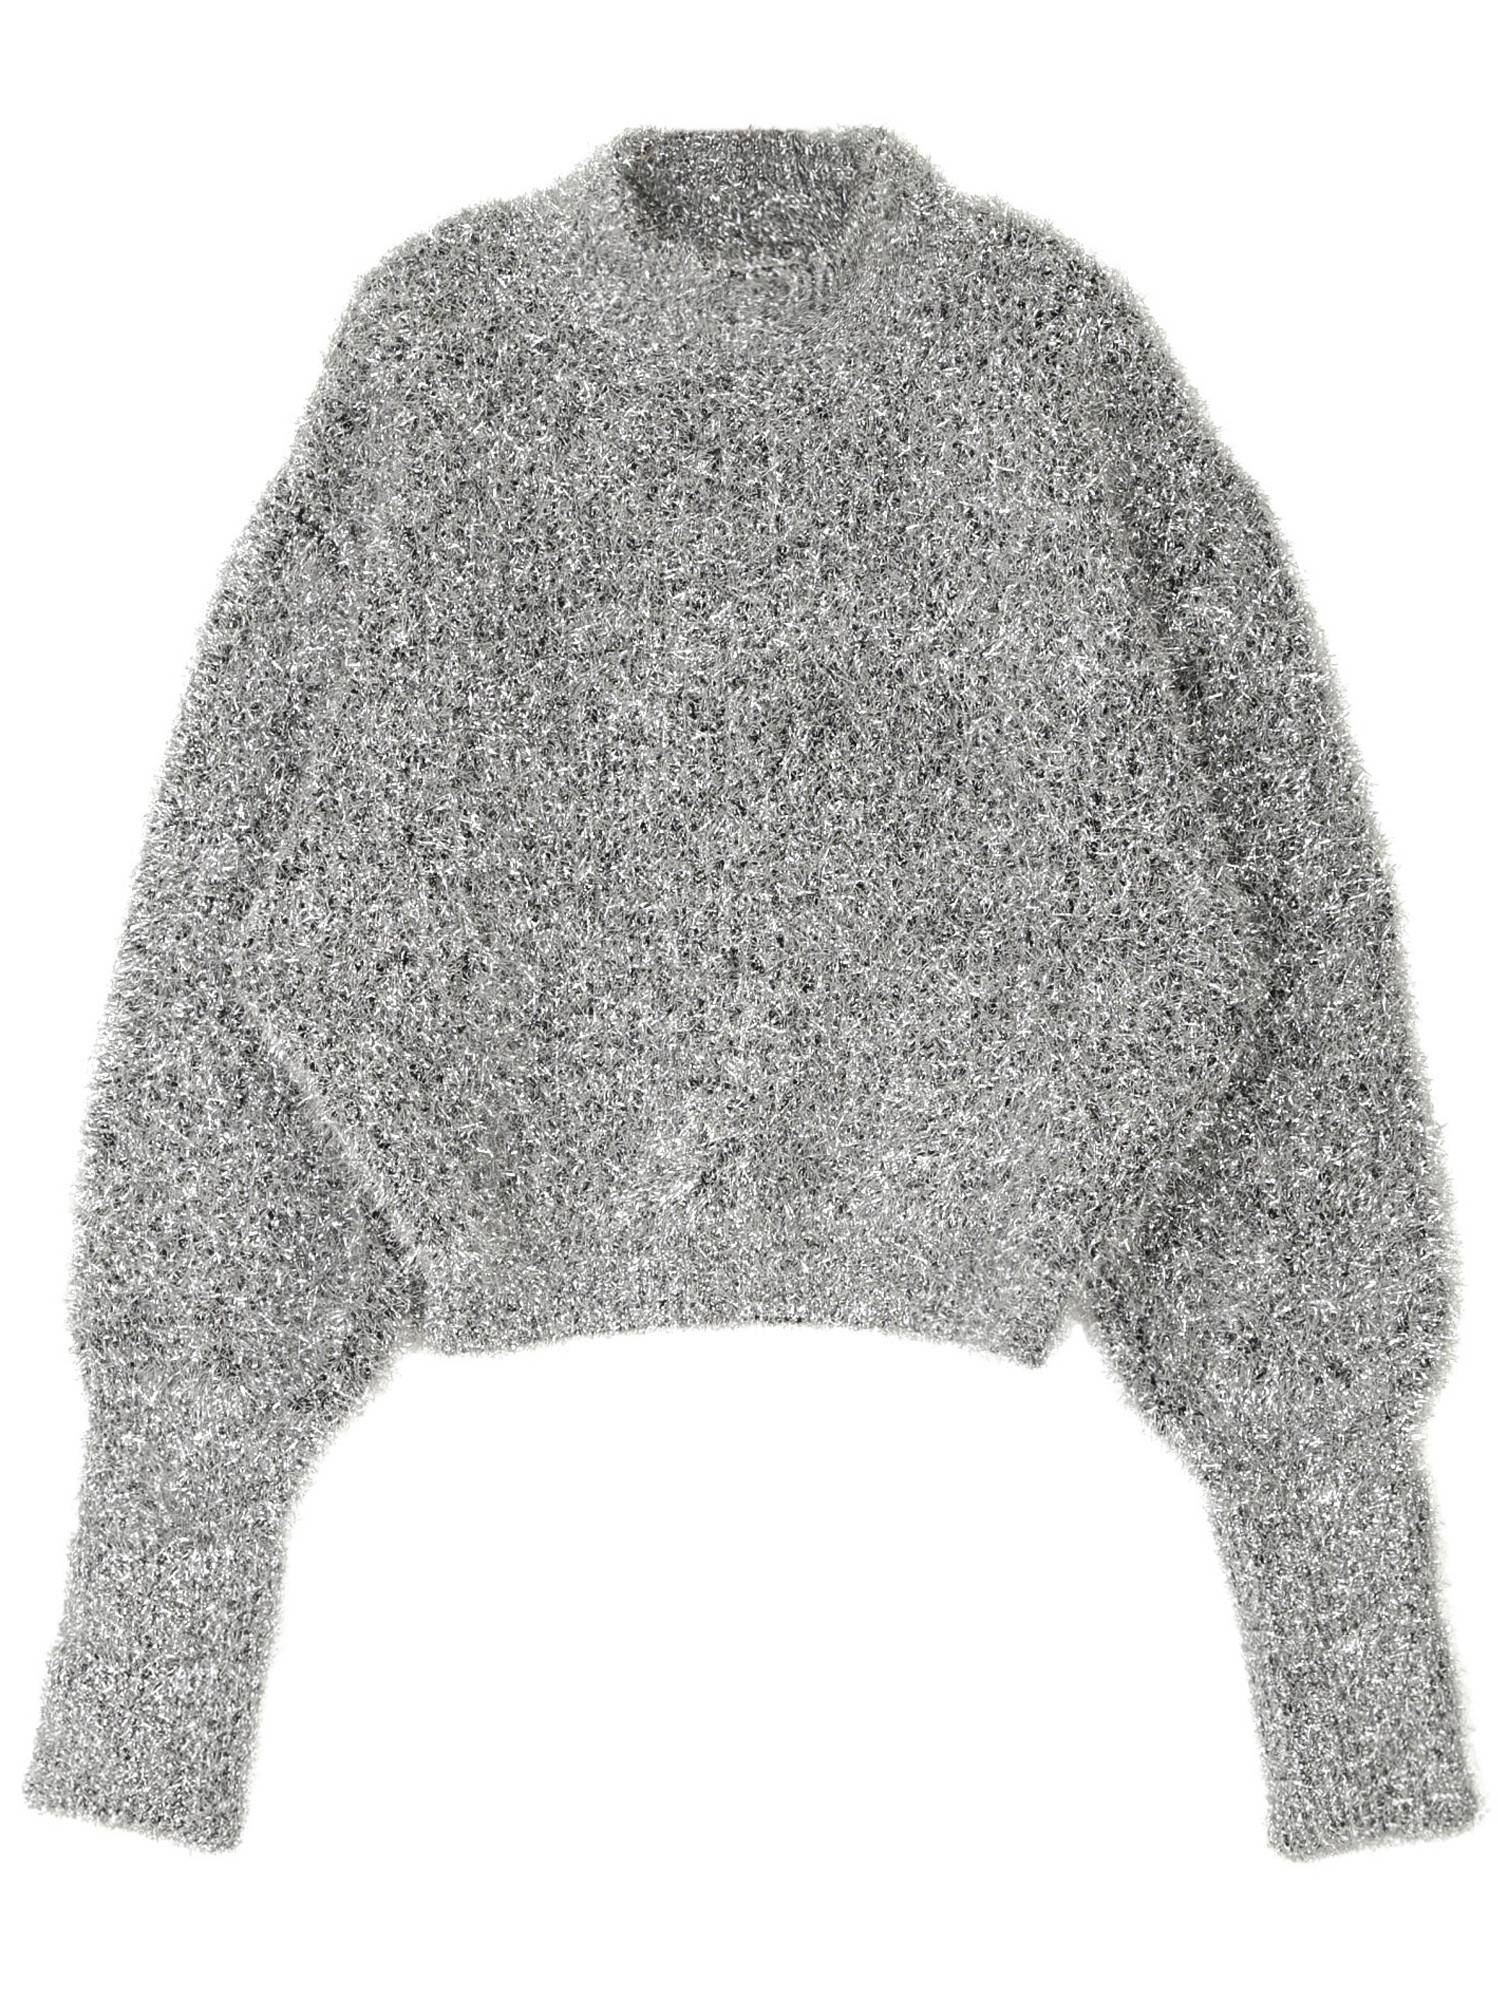 Glitter Shaggy Knit Top